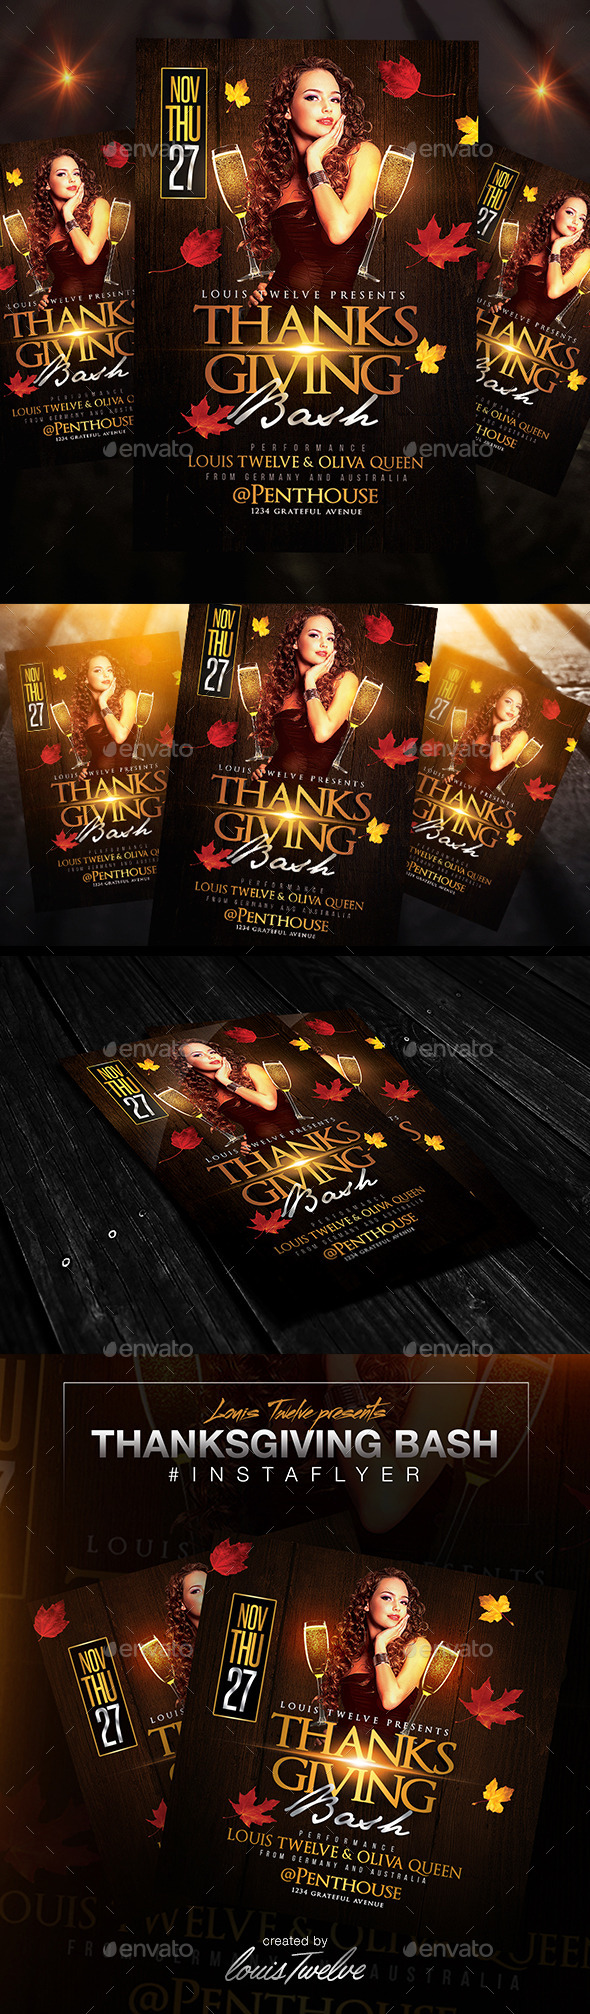 GraphicRiver Thanksgiving Bash Flyer & Instapromo 9410042